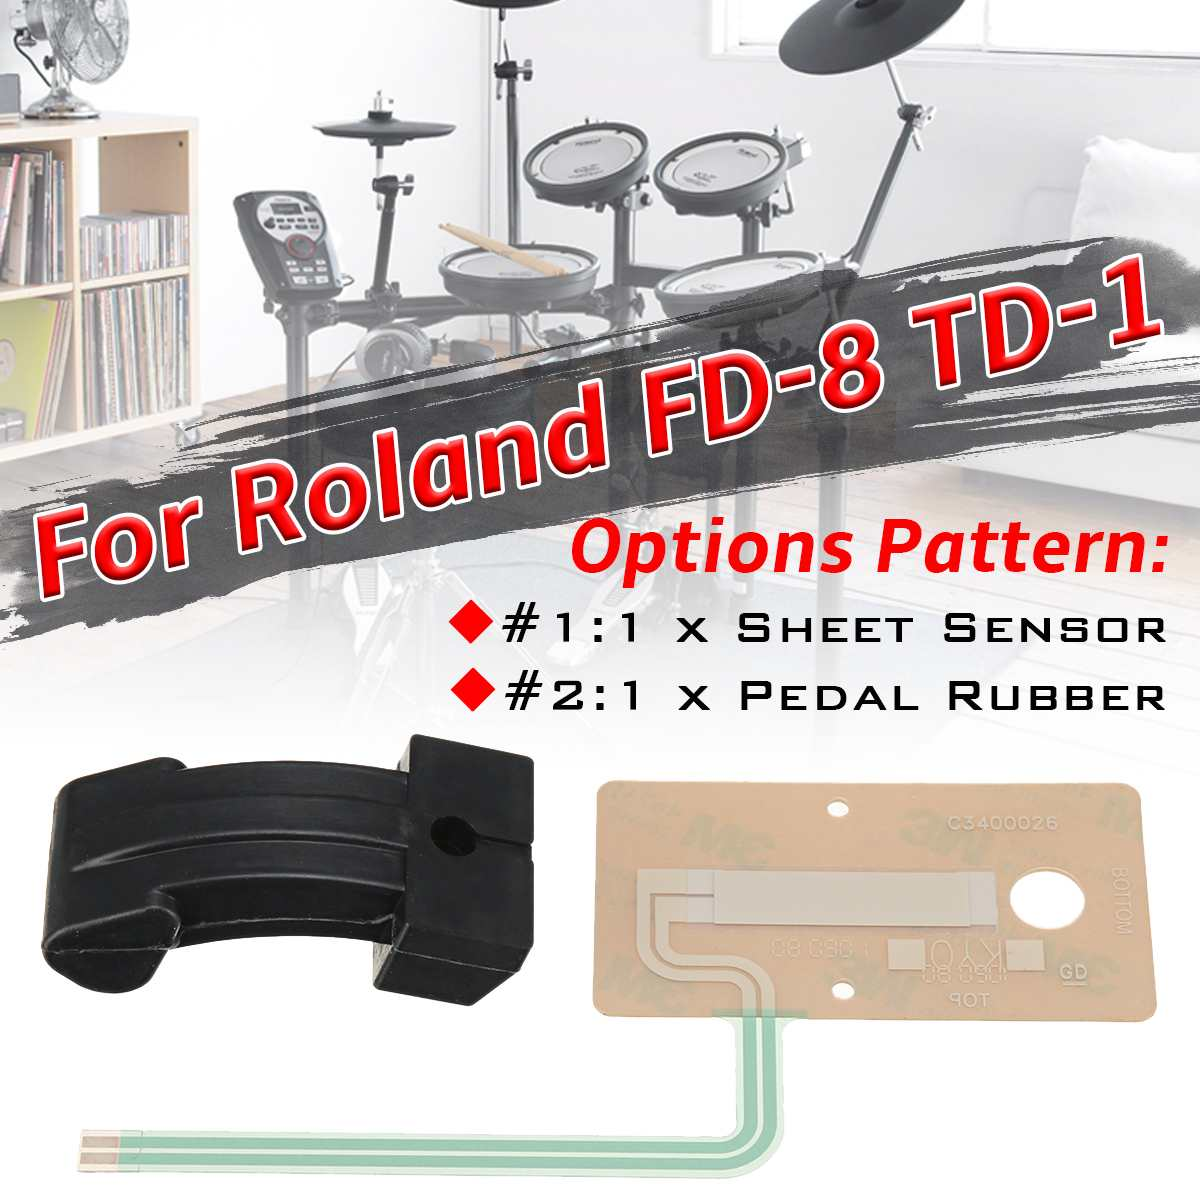 Drum Accessories Sheet Sensor Pedal Rubber Actuator Replacement Part Fits For Roland FD-8 TD-1 Hi Hat Pedal Rubber Part